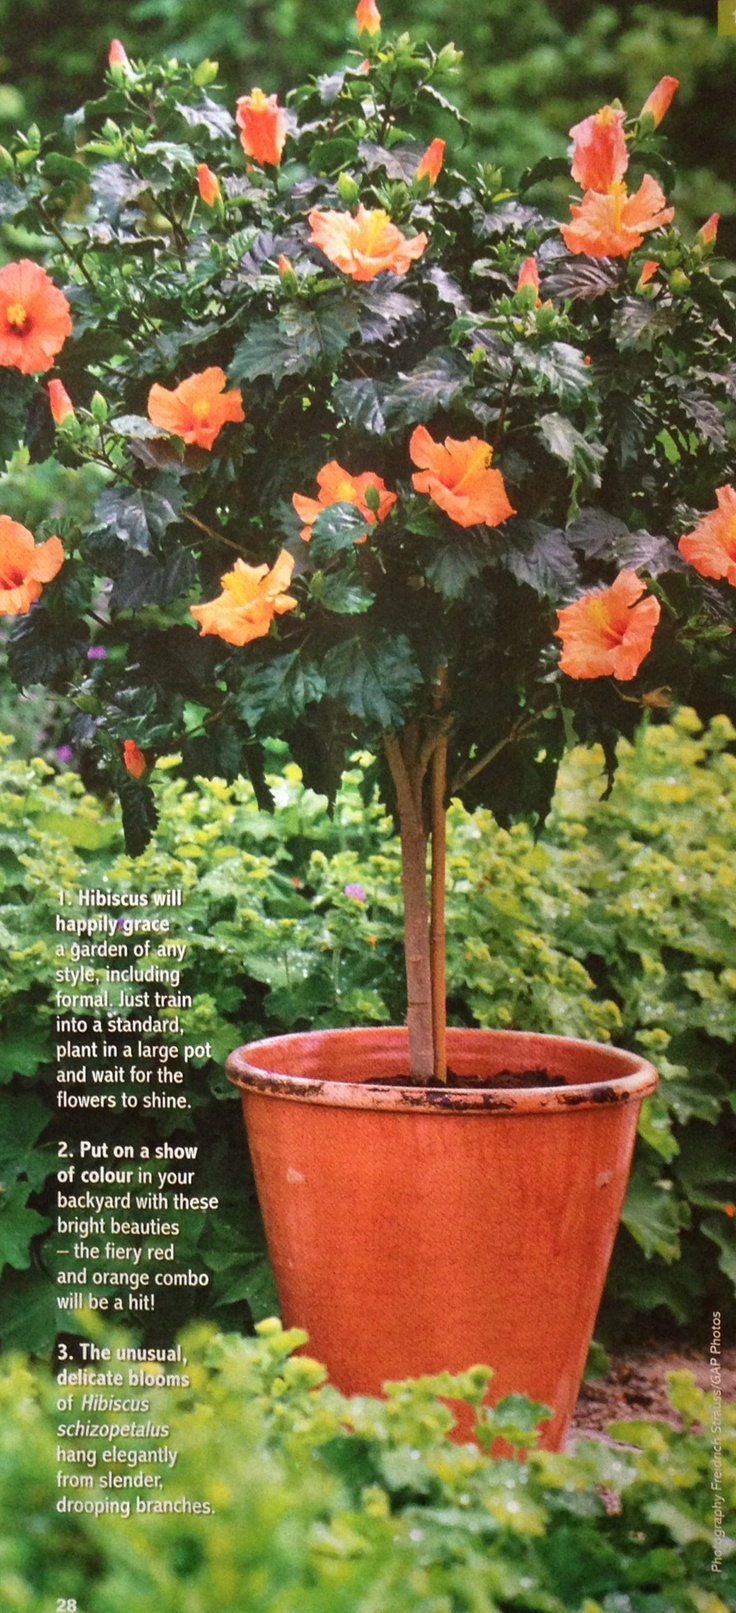 17 best PLANT FAVS: High on Hibiscus images on Pinterest | Hibiscus ...